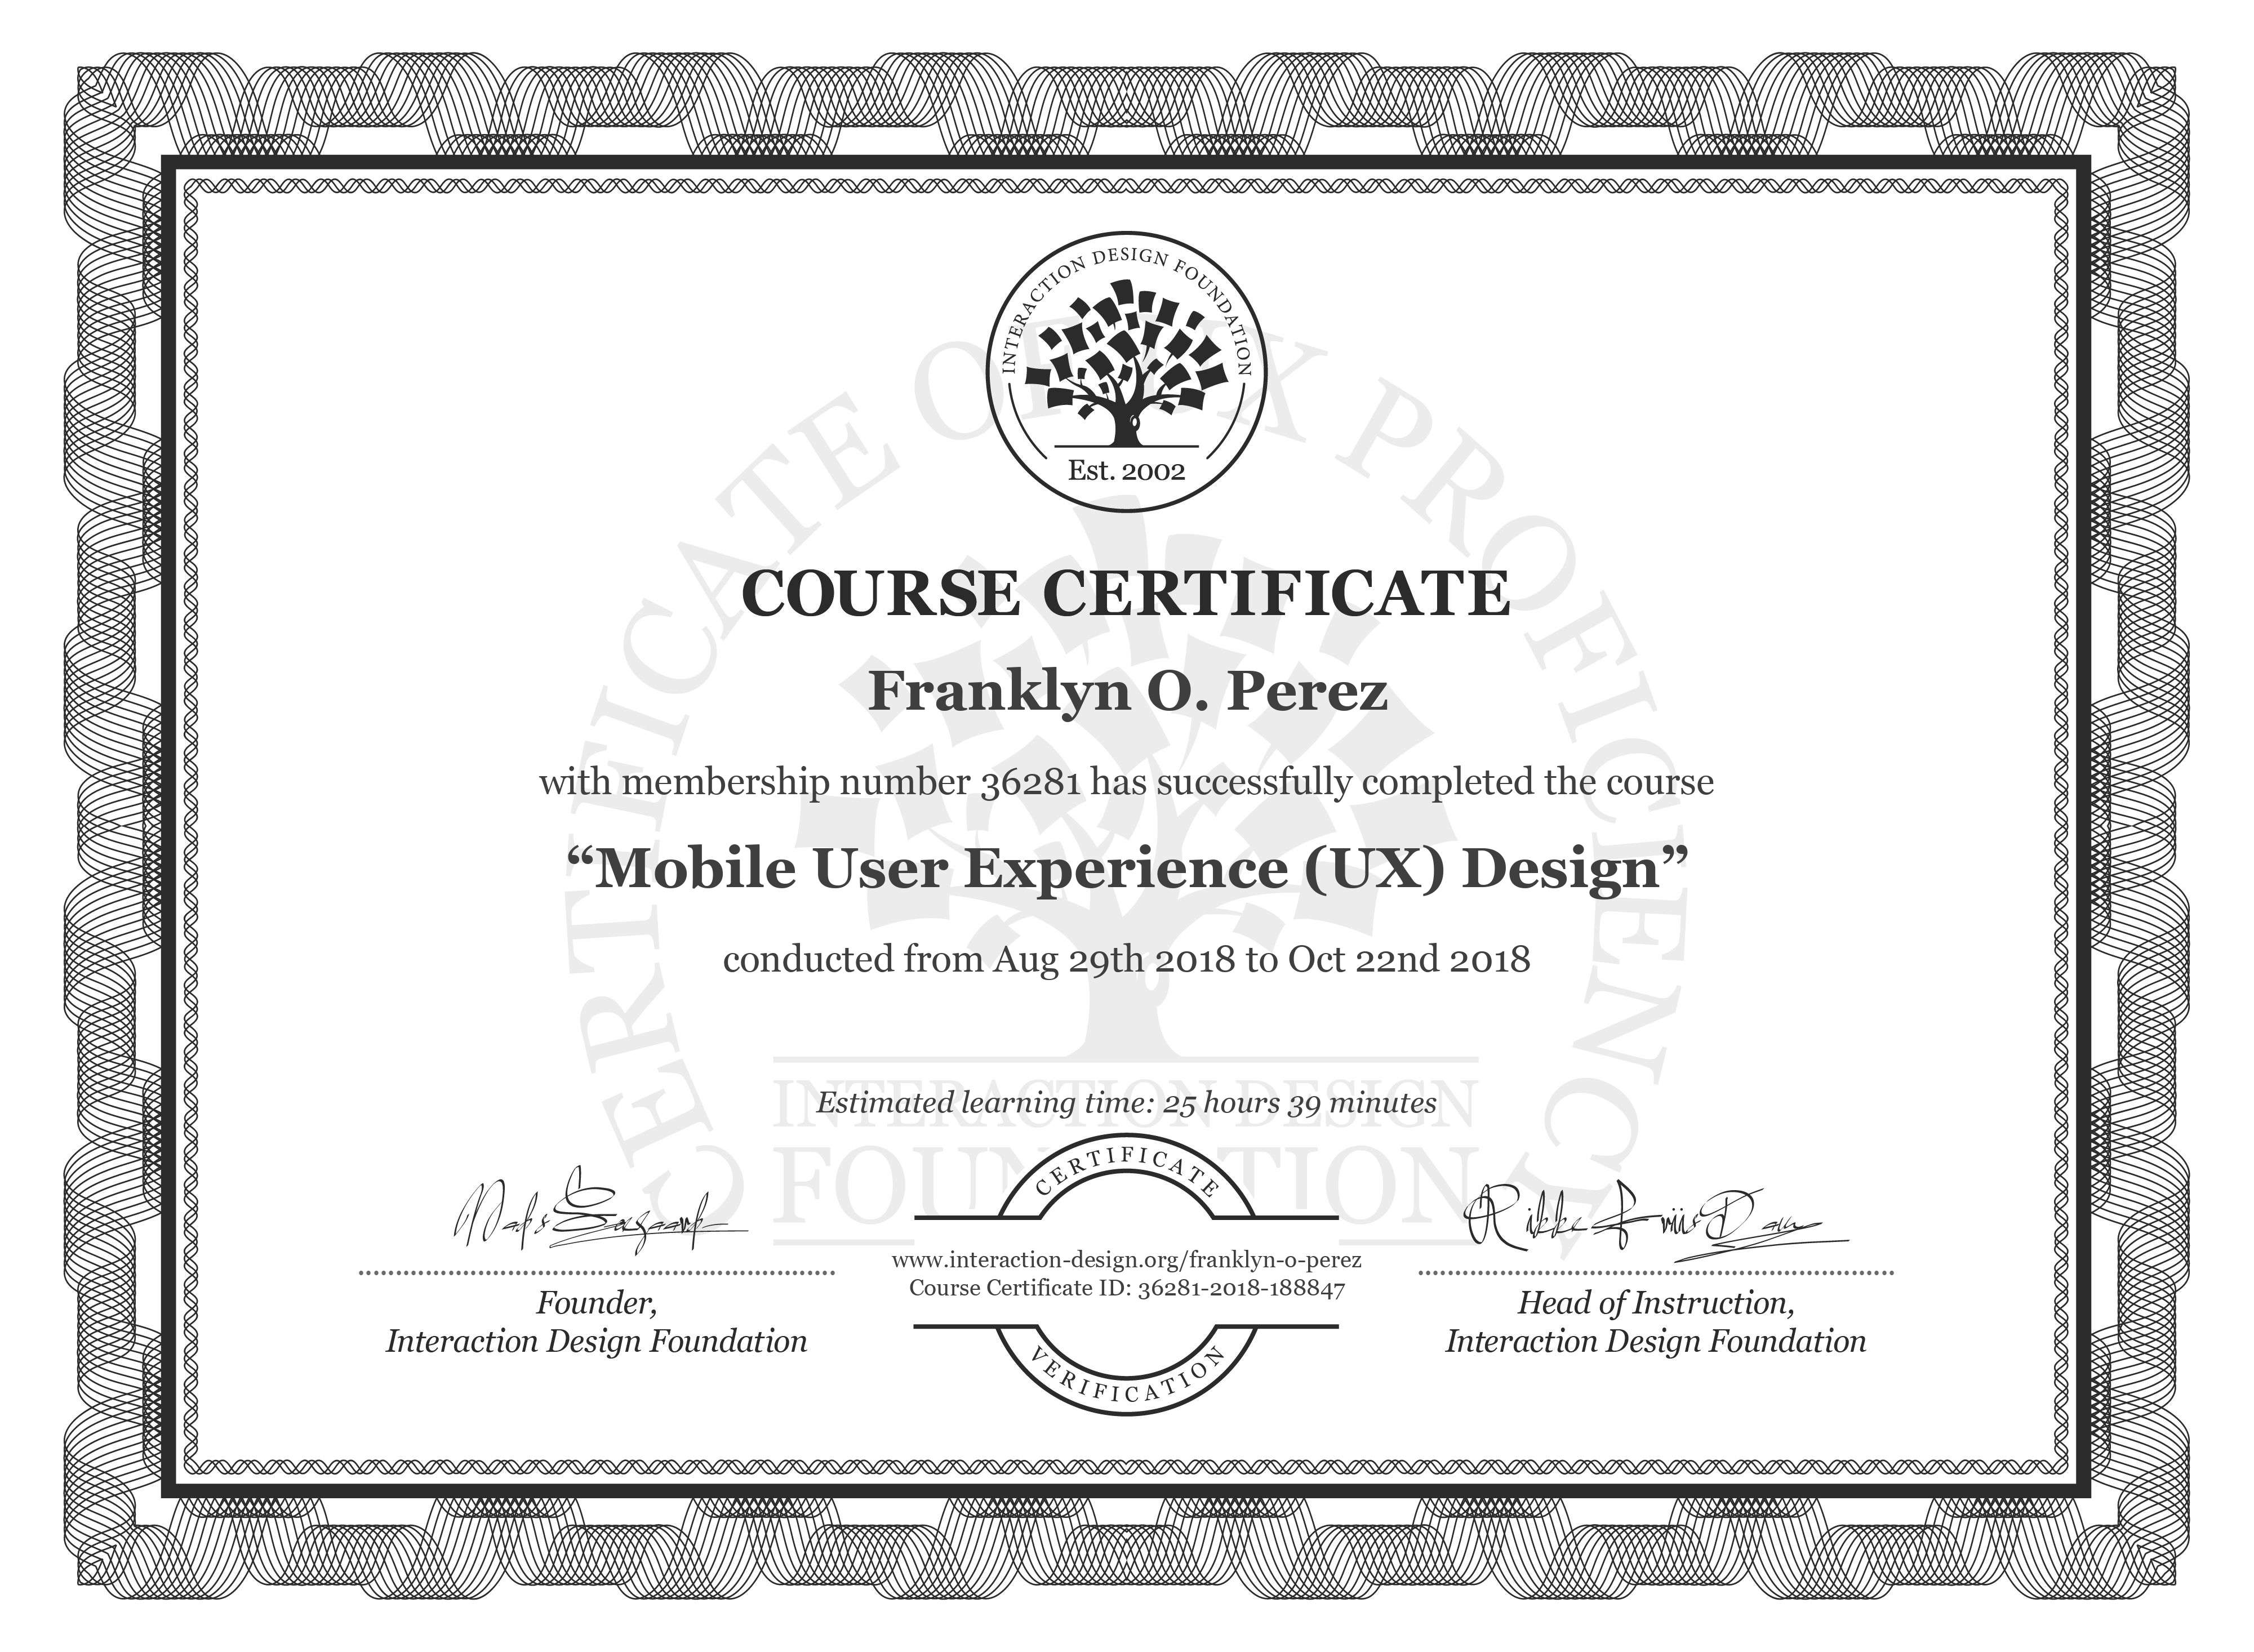 Franklyn O. Perez: Course Certificate - Mobile User Experience (UX) Design